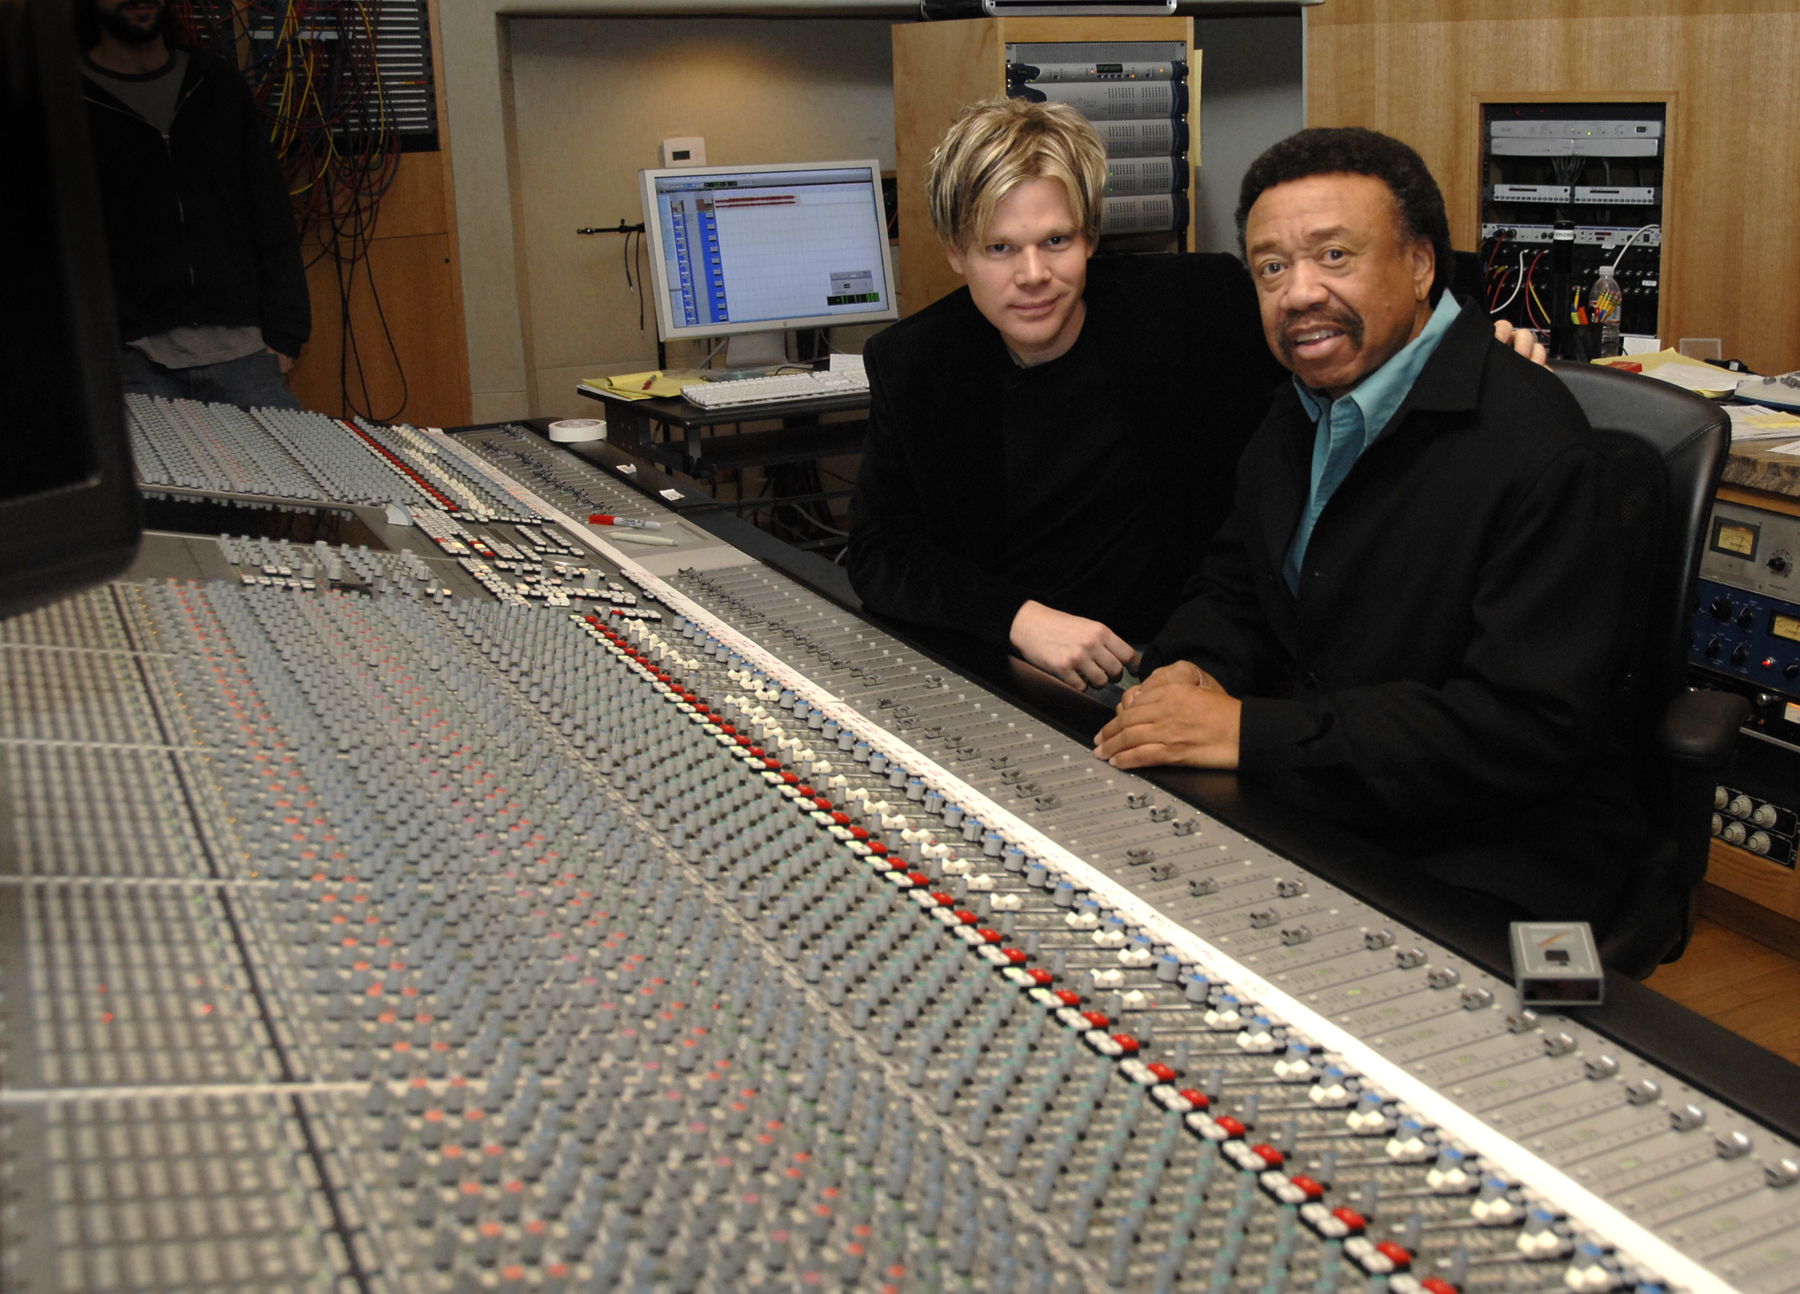 Brian & Maurice White at Glenwood Place Studios, Burbank, CA